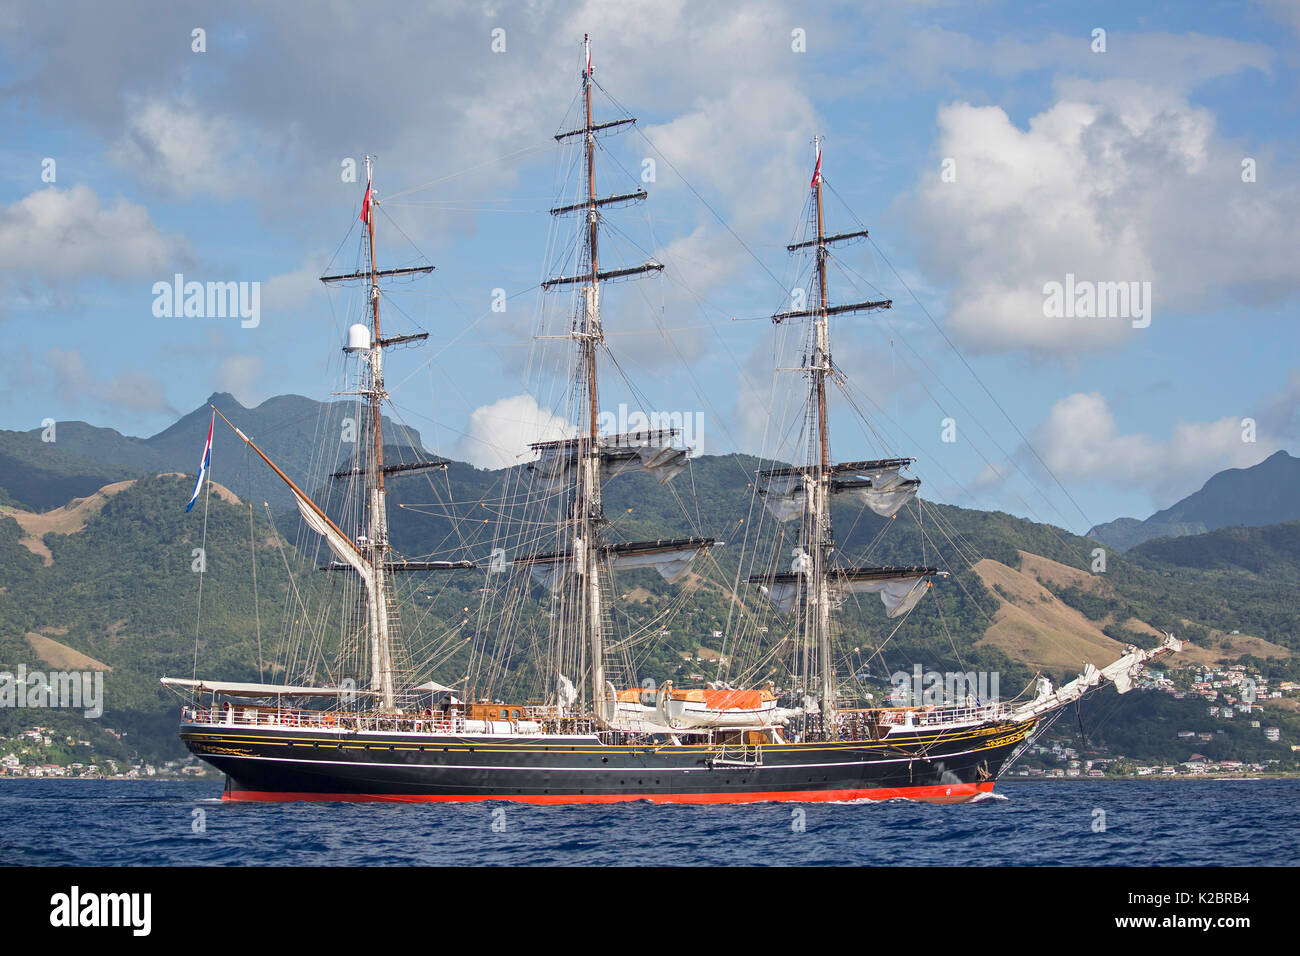 Three-masted clipper cruising ship 'Stad Amsterdam', Dominica, Caribbean Sea, Atlantic Ocean. All non-editorial uses must be cleared individually. - Stock Image